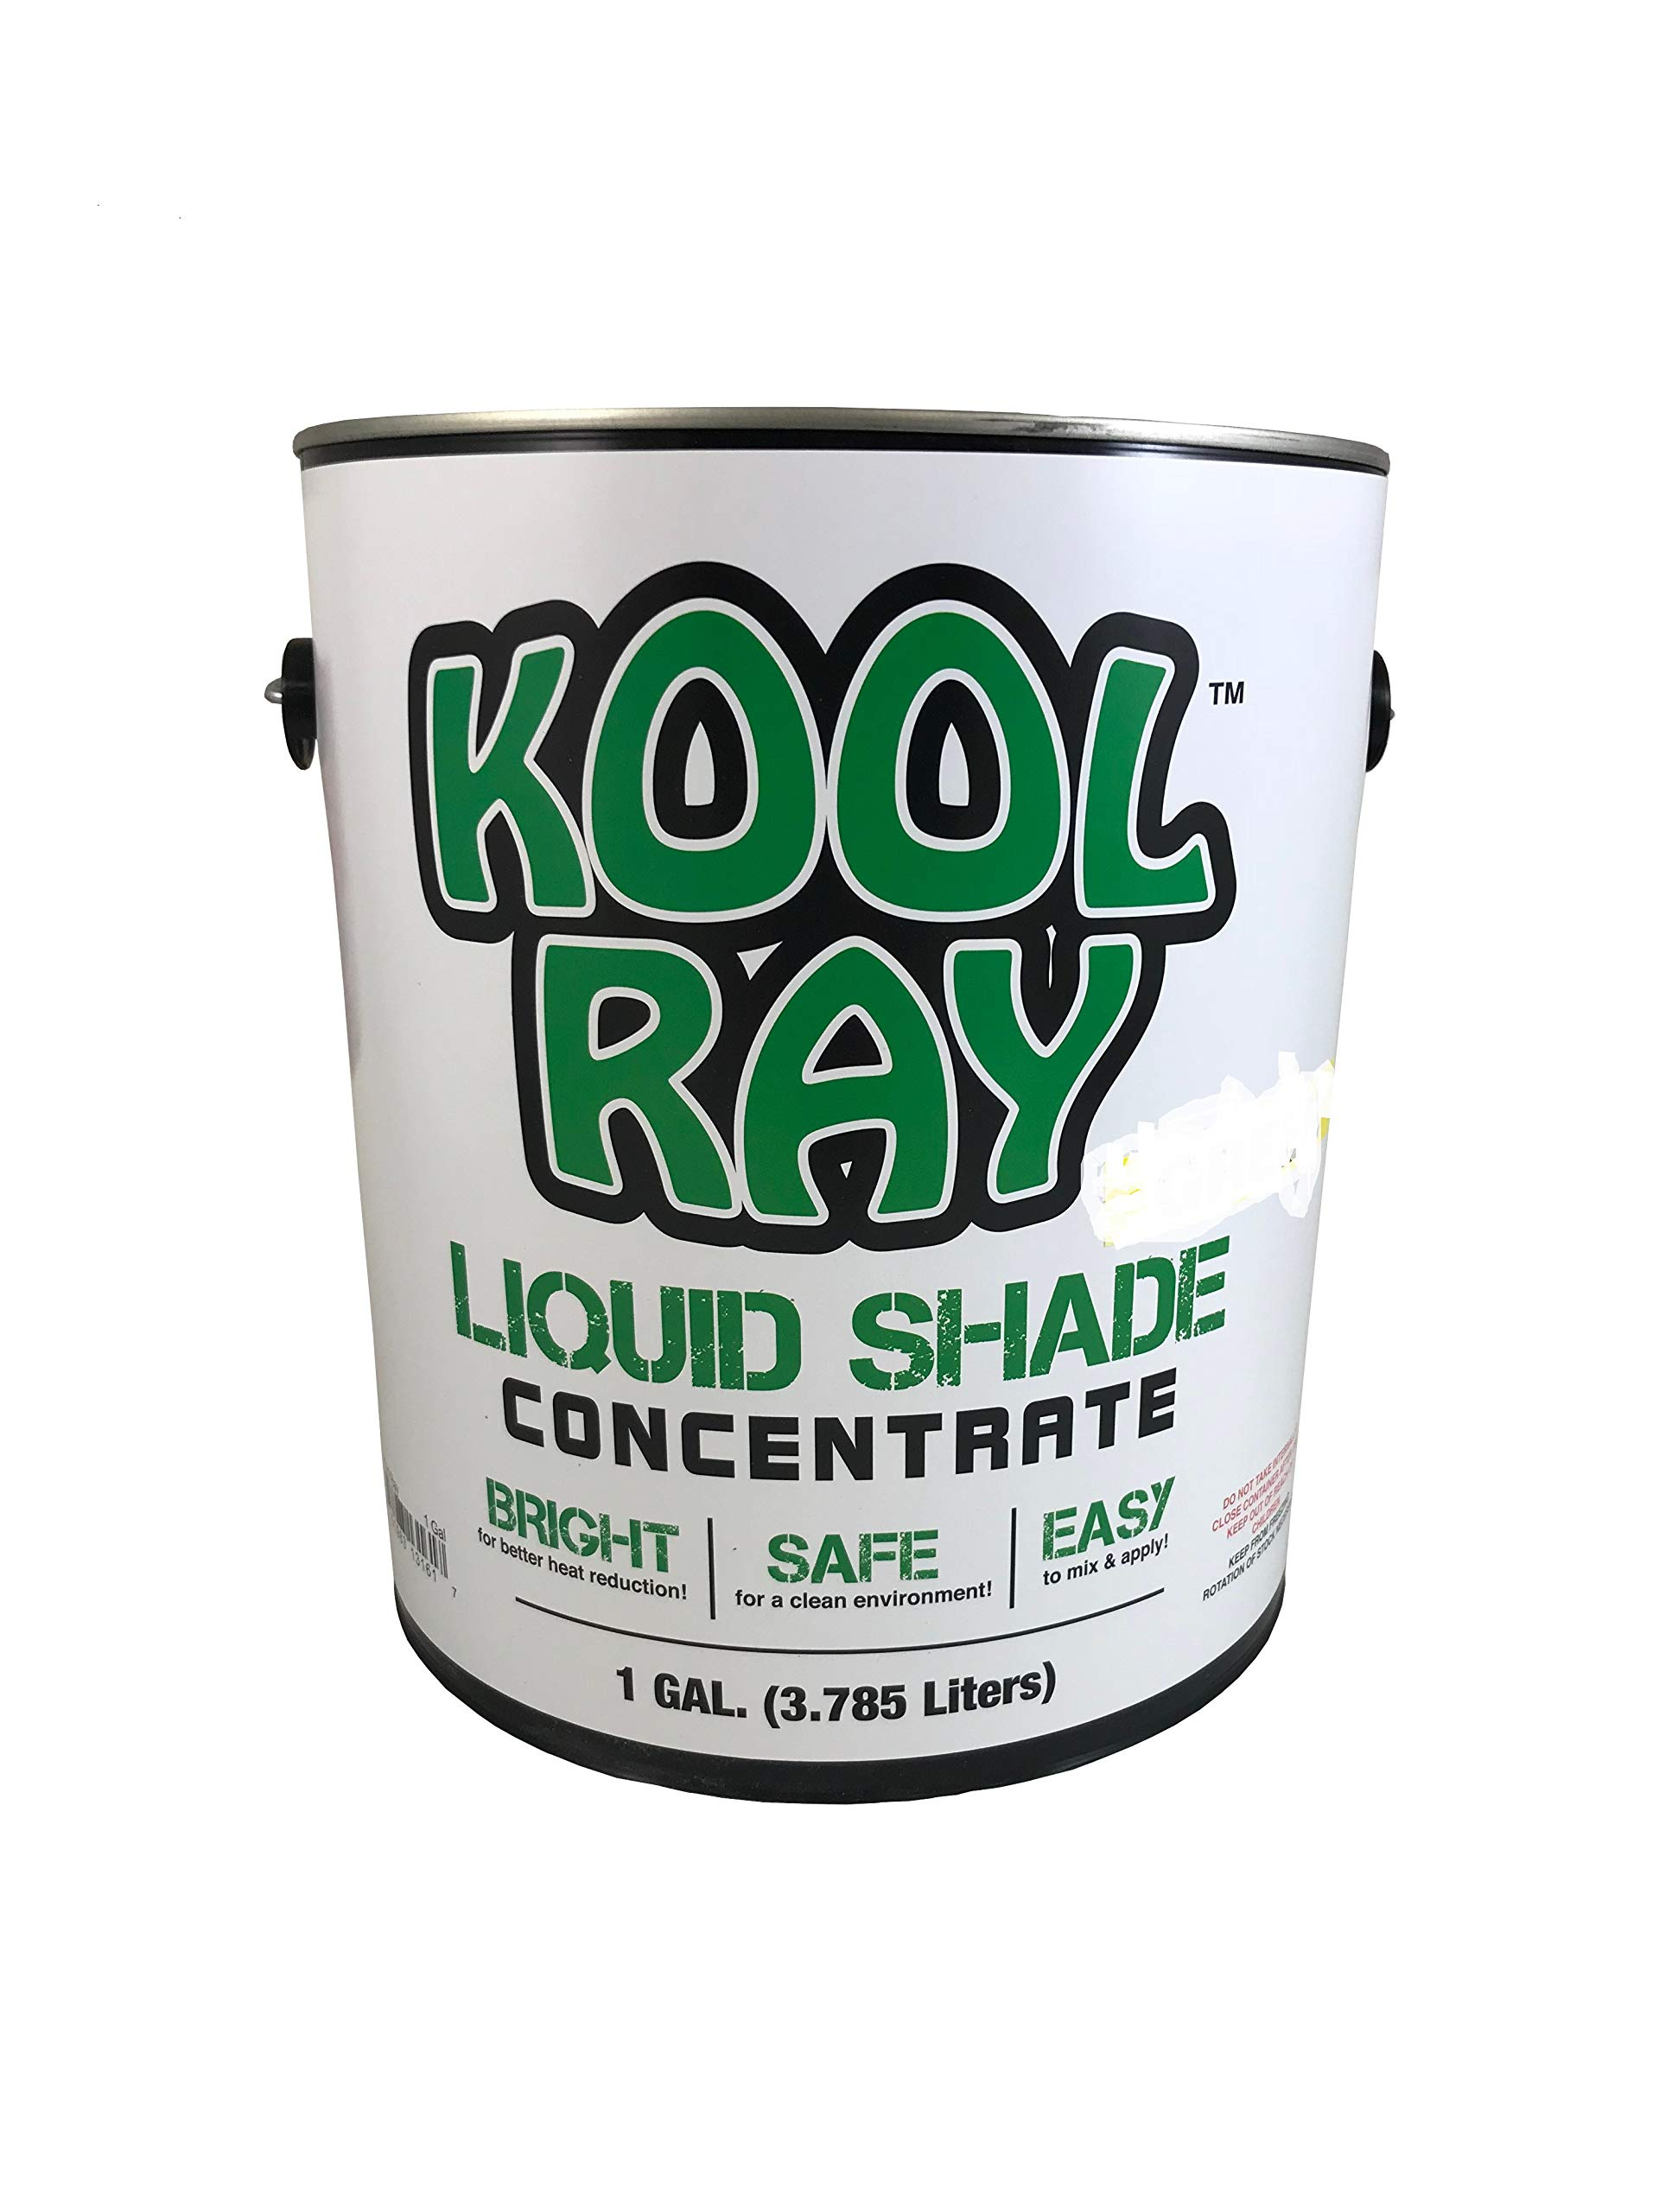 Classic Kool Ray Liquid Shade - Greenhouse Paint - White - 1 Gallon by The Continental Products Co